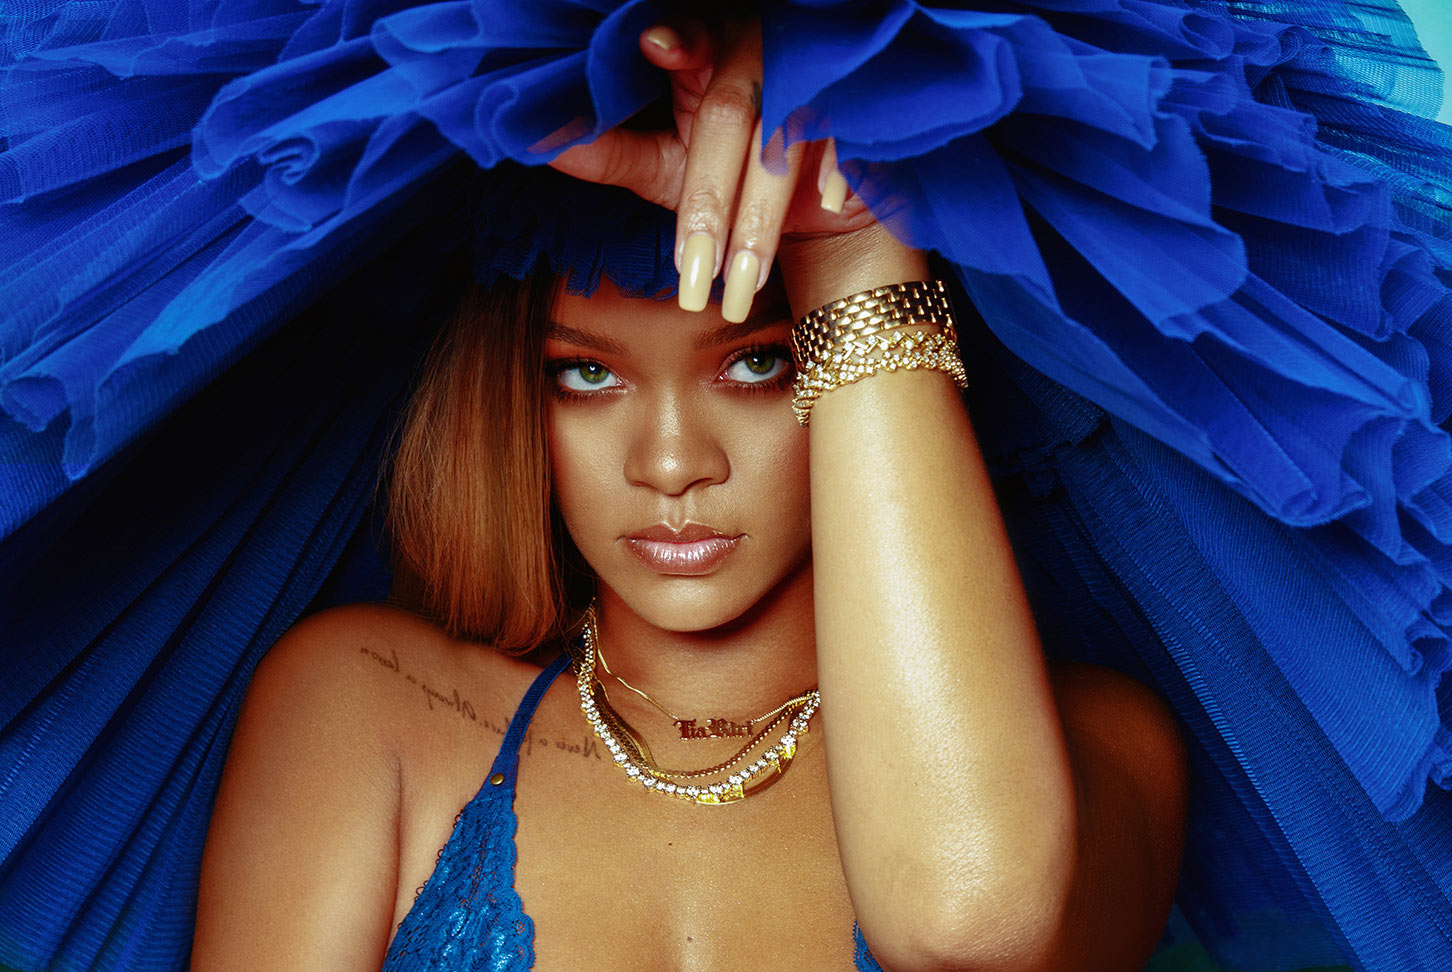 Savage X Fenty Review: Does Rihanna's Lingerie Live Up to the Hype?